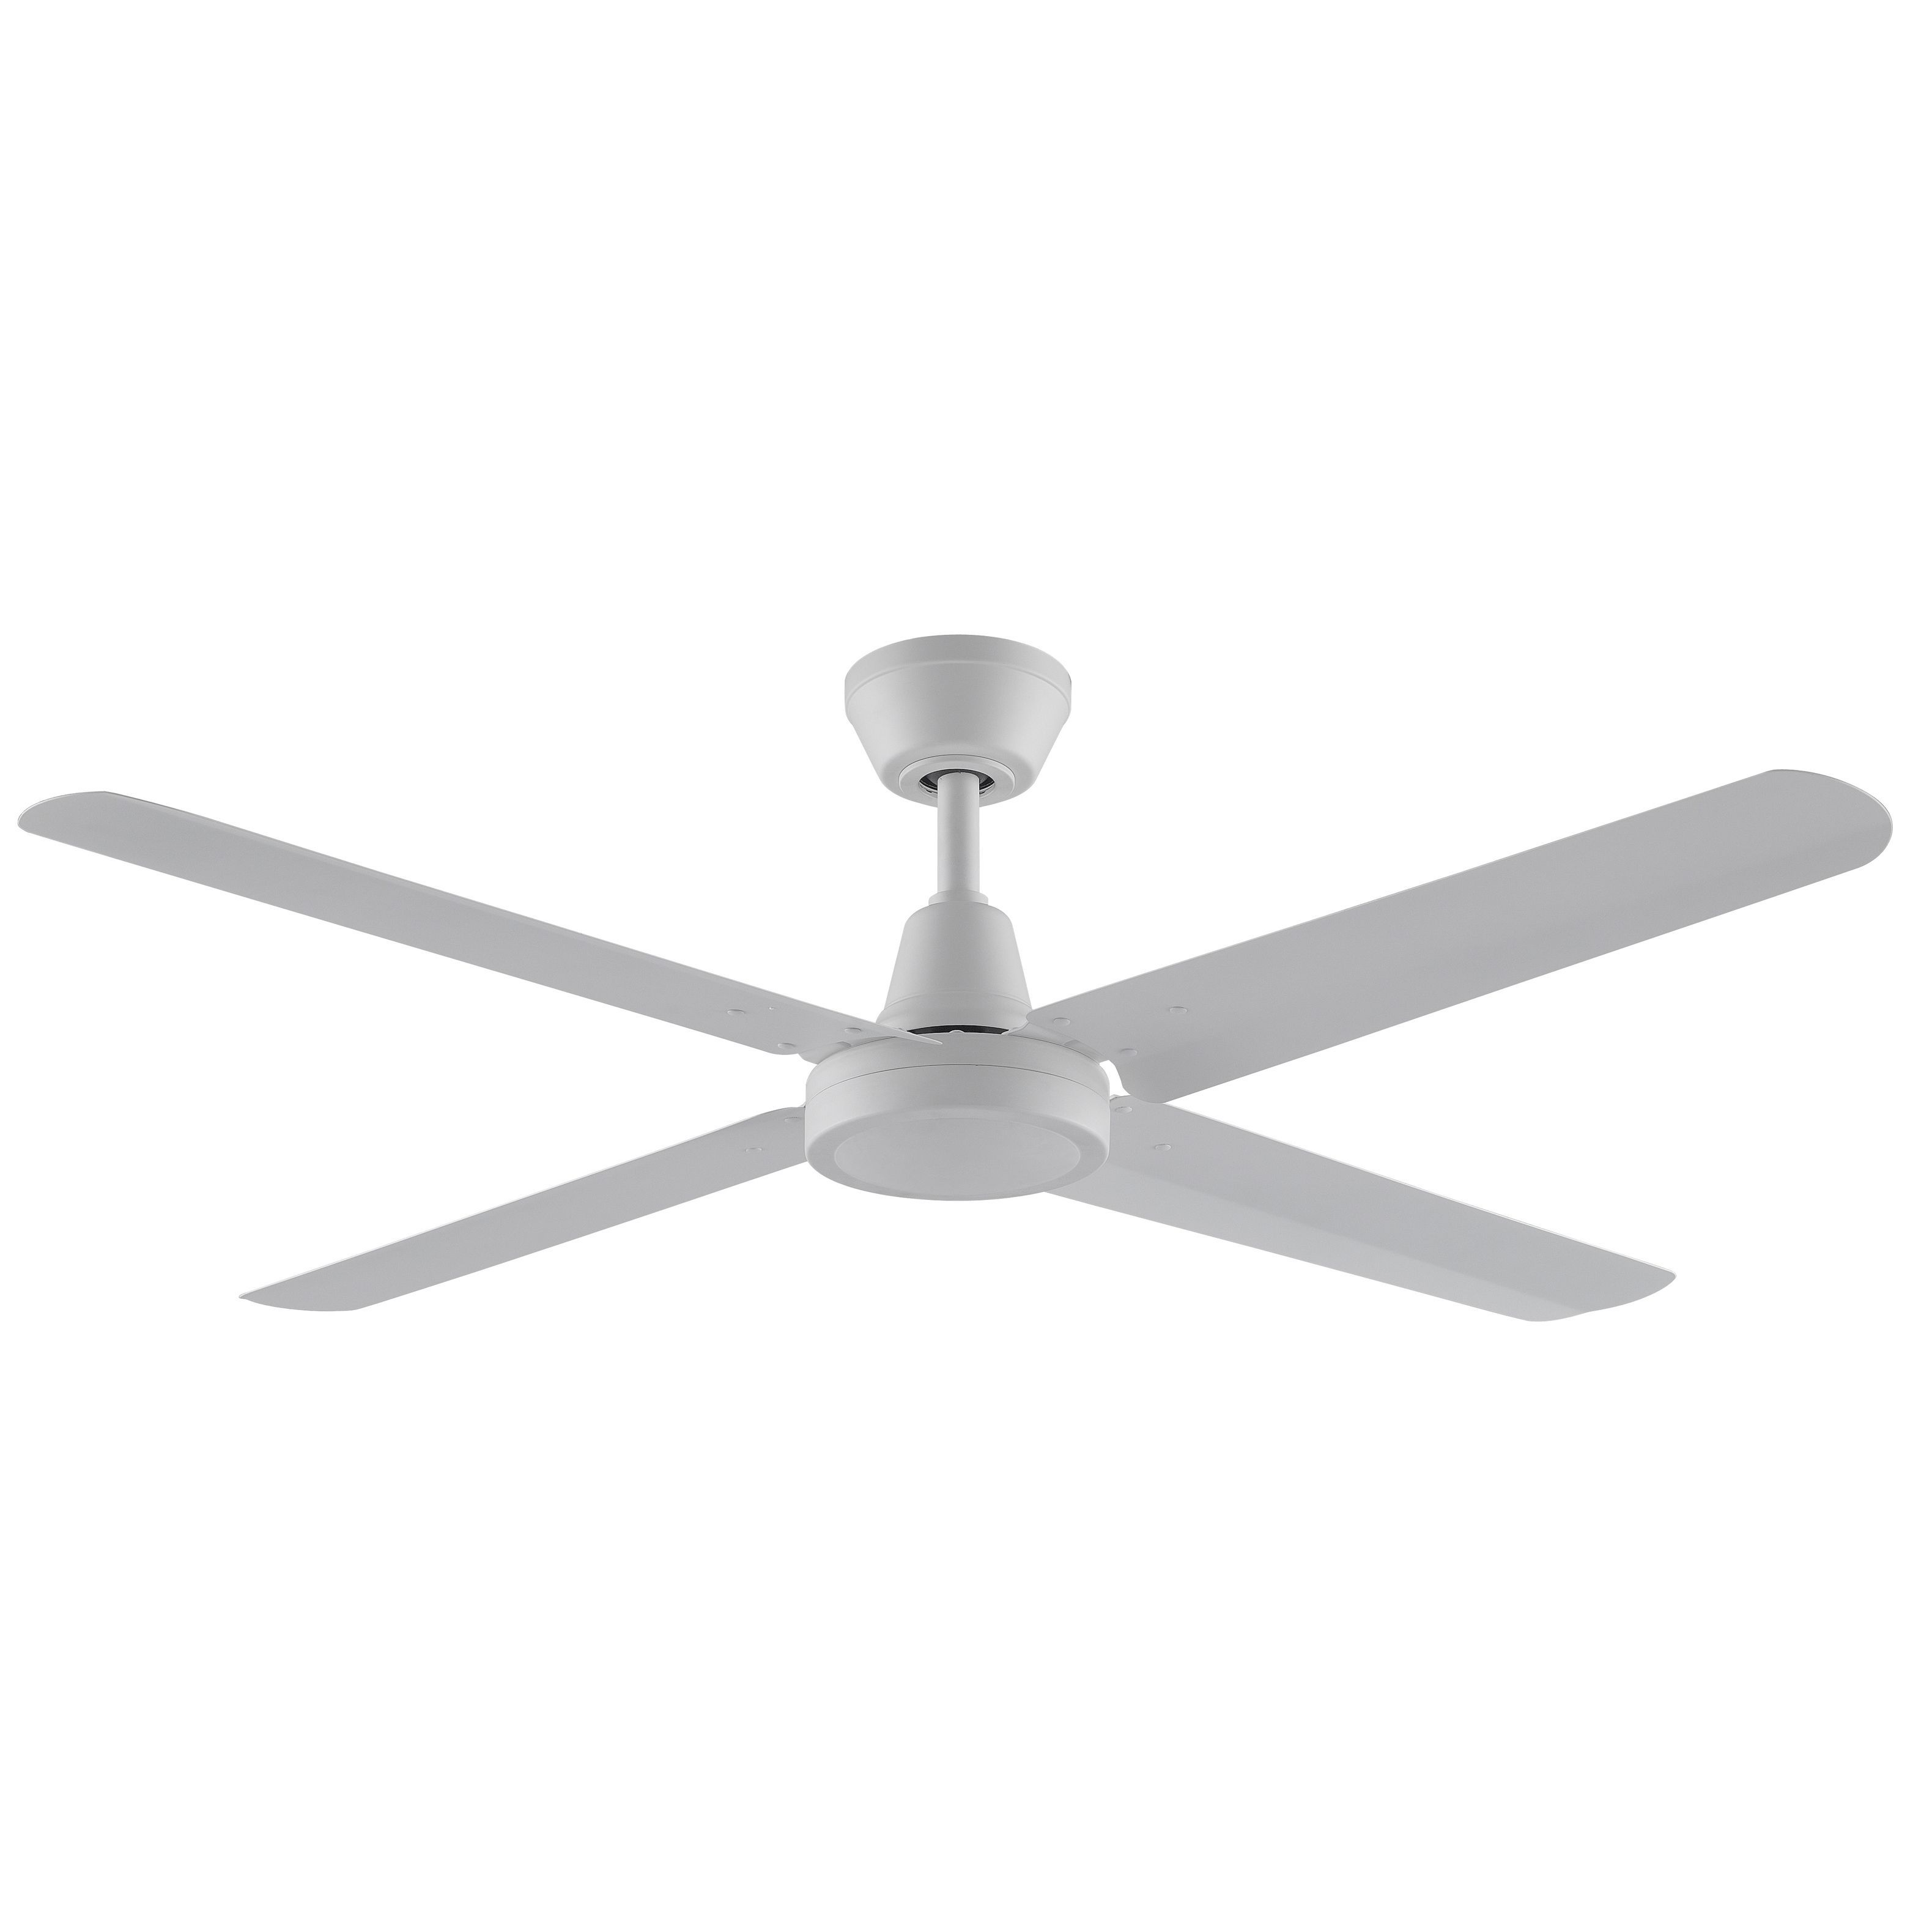 Fanimation ascension 4 blade matte white ceiling fan overstock fanimation ascension 4 blade matte white ceiling fan overstock shopping the best mozeypictures Images